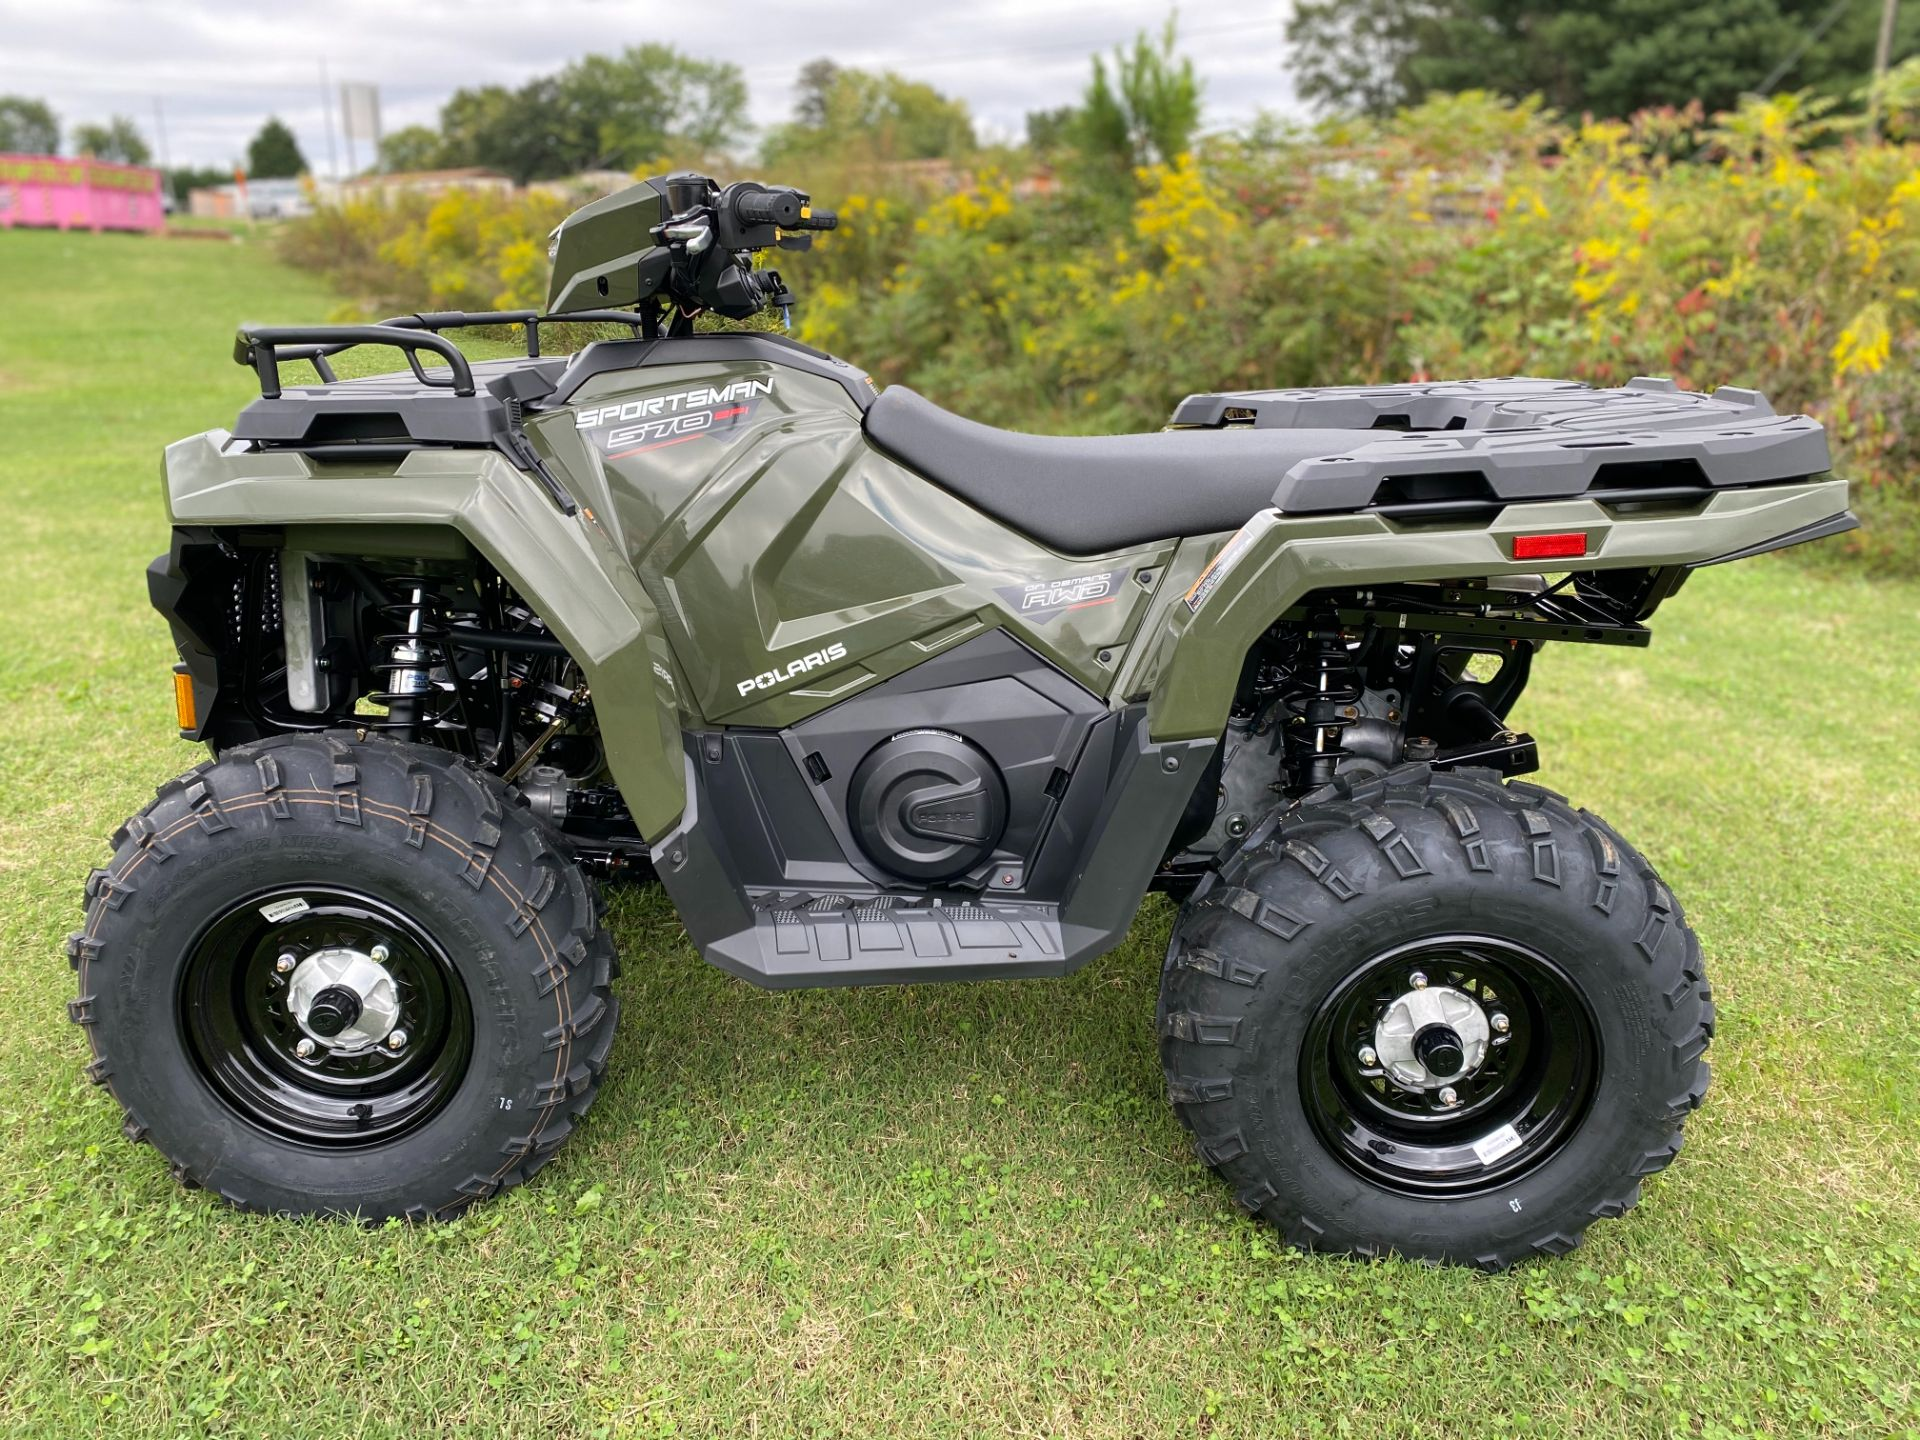 2021 Polaris Sportsman 570 in Greer, South Carolina - Photo 11